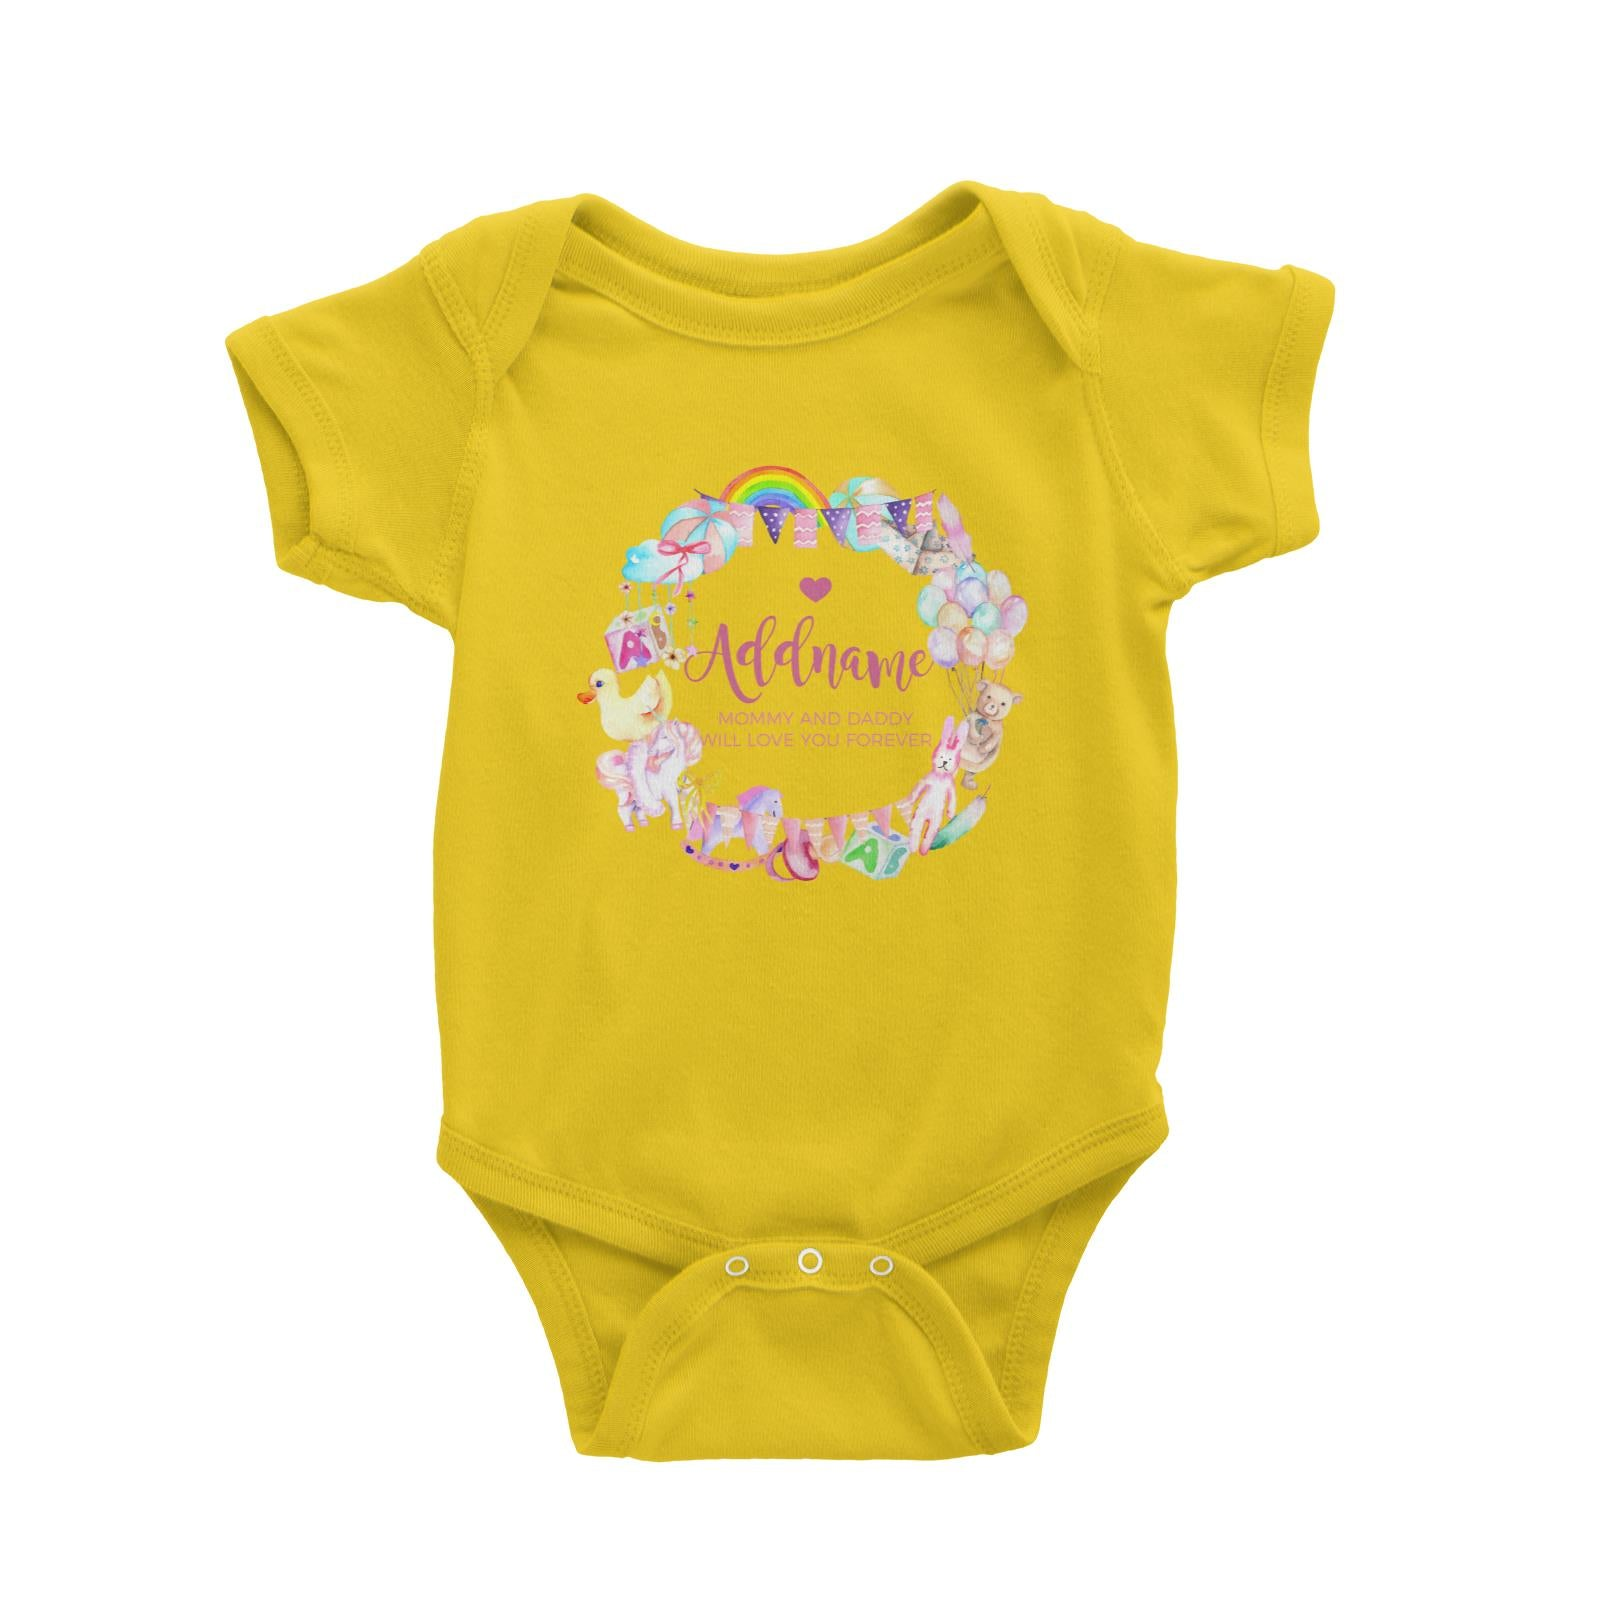 Watercolour Magical Girlish Creatures and Elements Personalizable with Name and Text Baby Romper